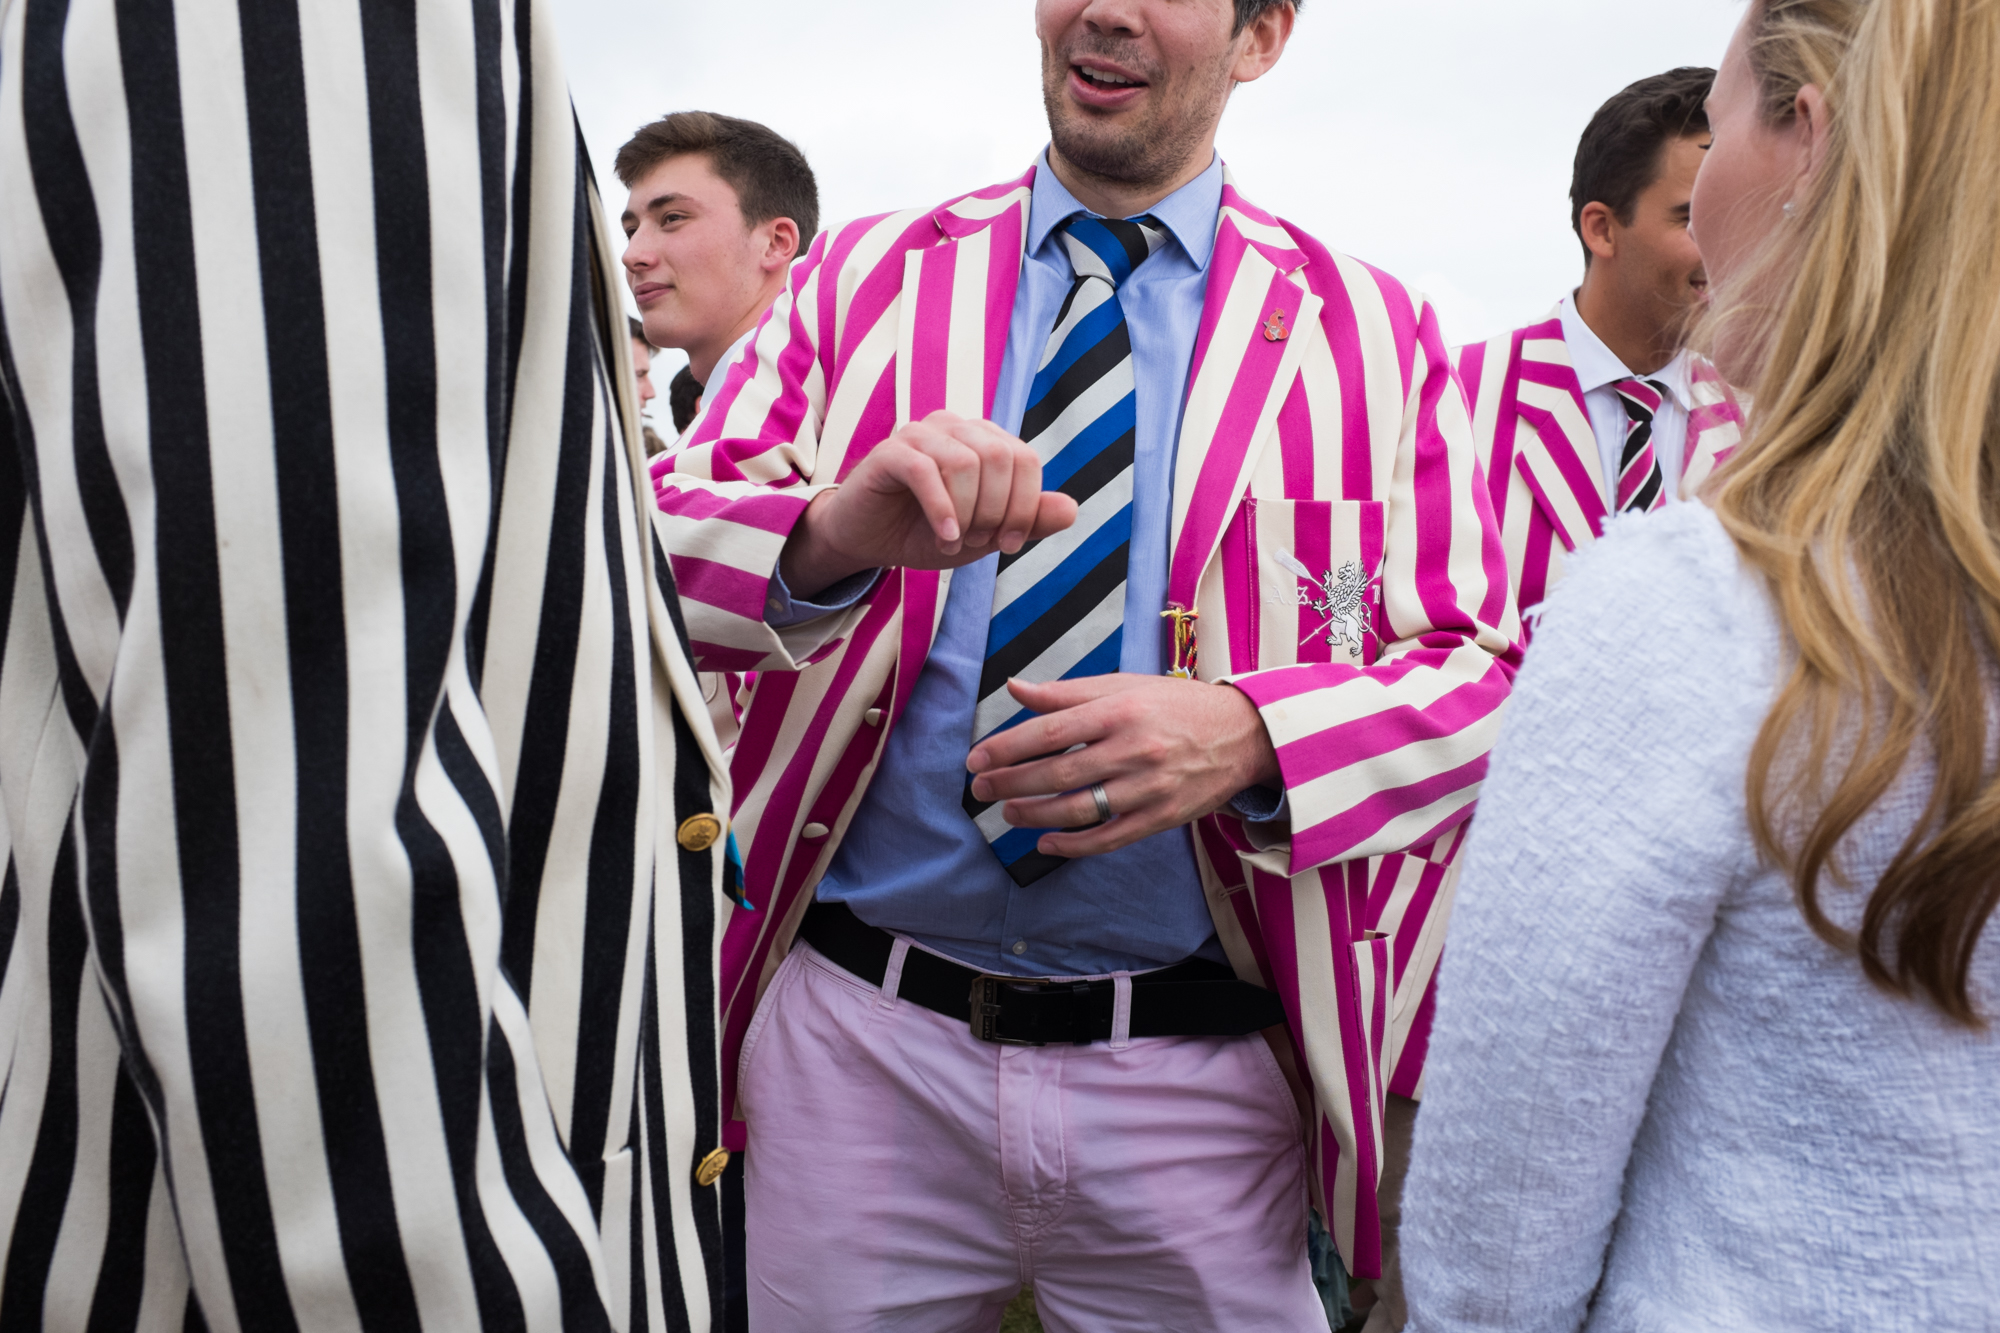 Rowers from Abingdon School, wearing their distinctive blazers, mingle with the crowds  at Henley Royal Regatta.